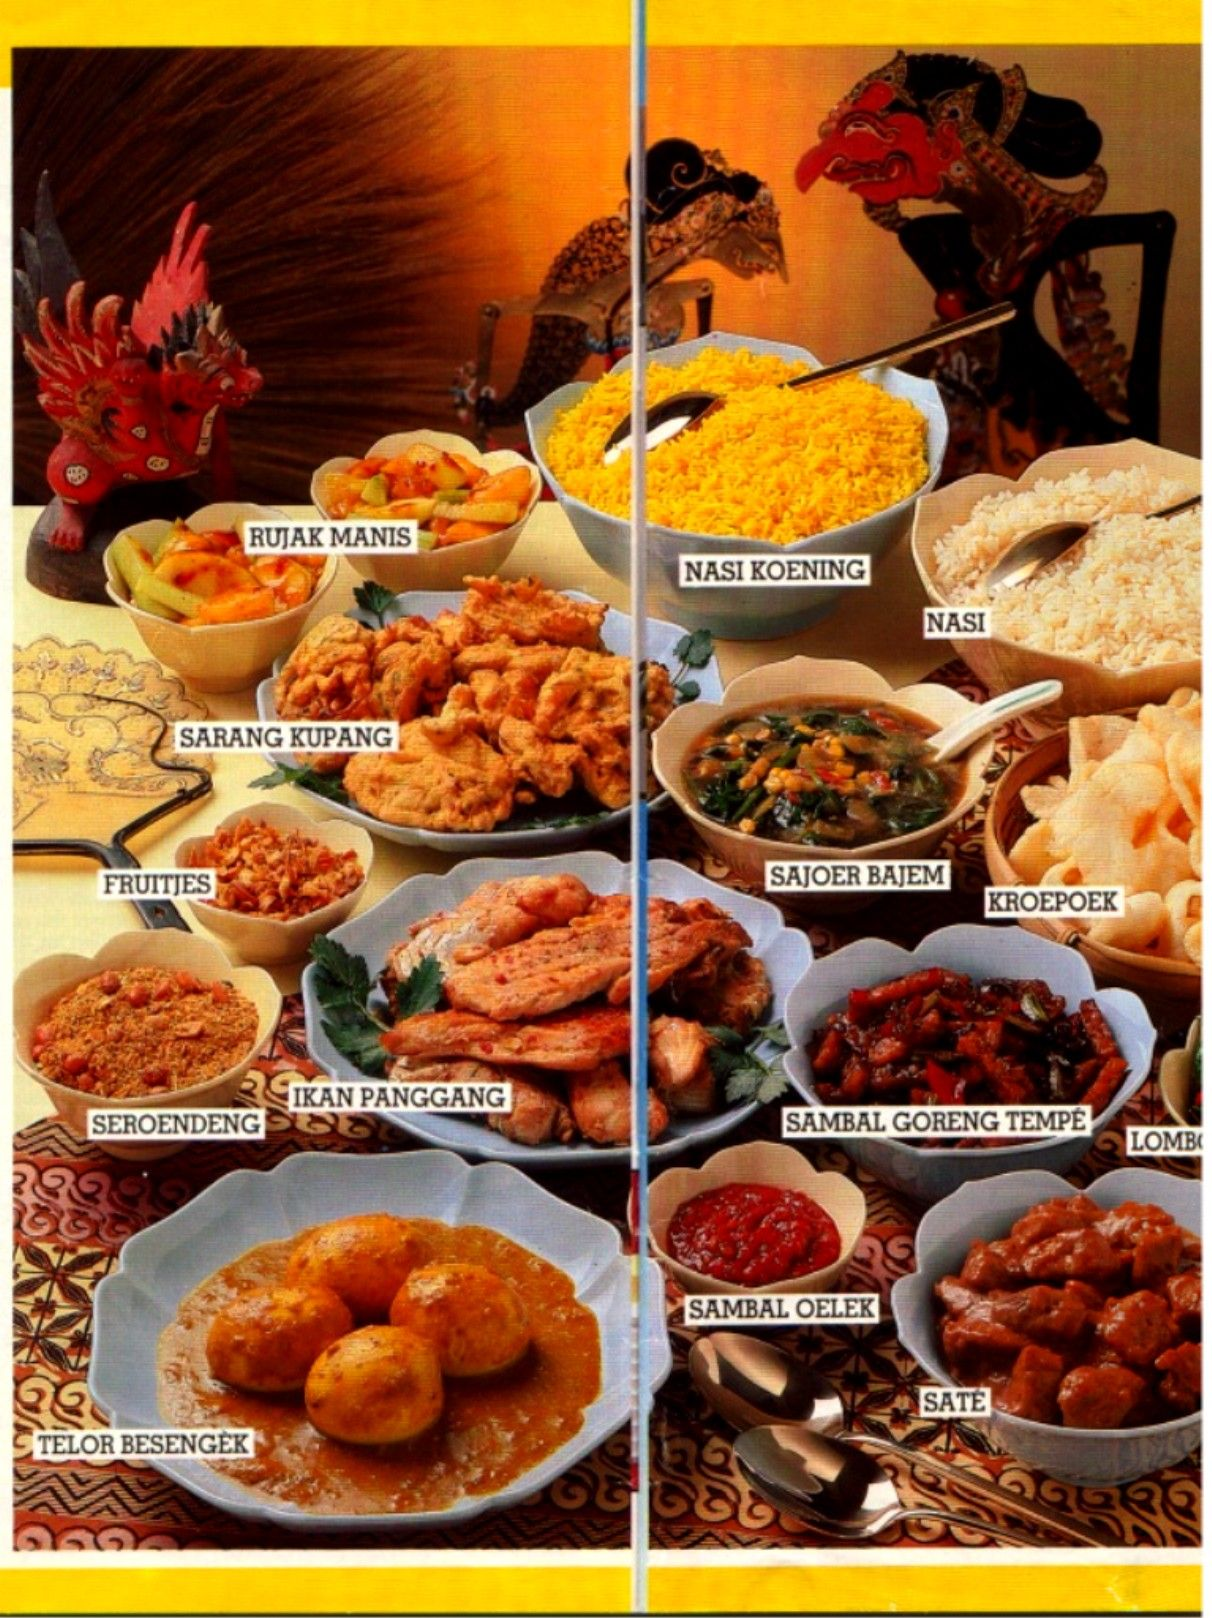 Rijsttafel Rice Table Dutch Indonesian Dishes Foreign Sambal Bawang By Aisha Store Sby